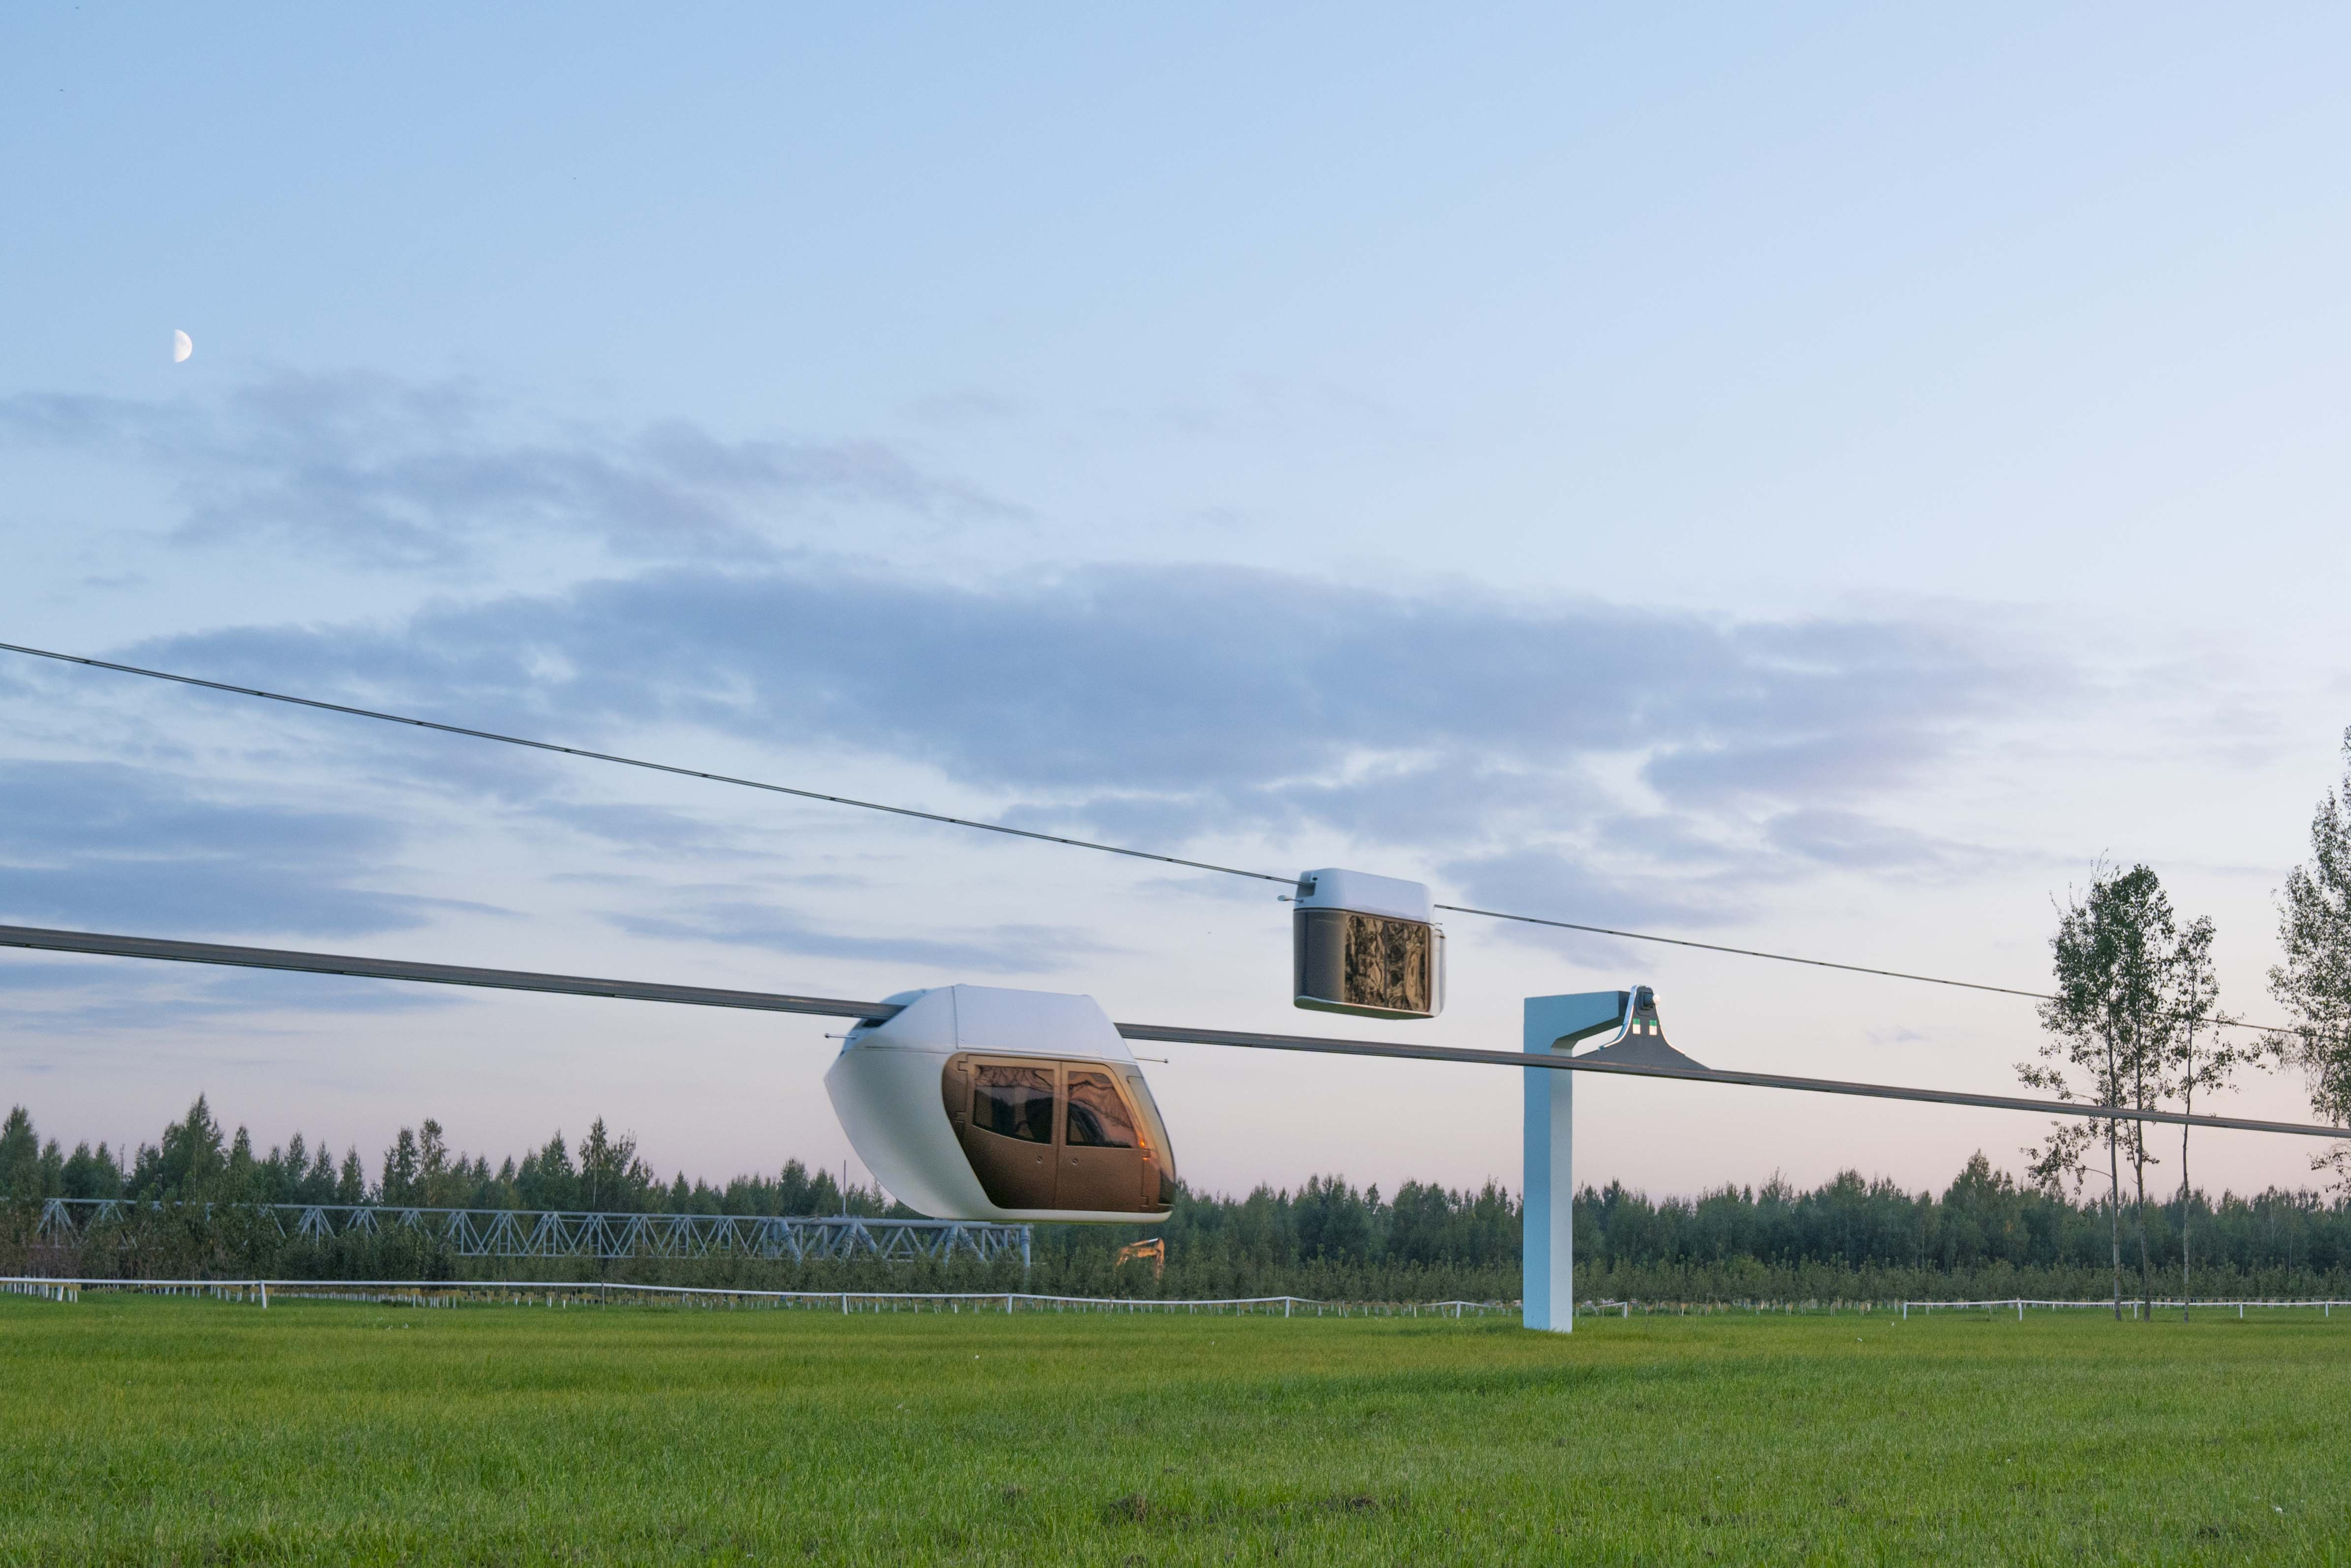 SkyWay, Sky Way, SkyWay in Belarus Yunitsky, string transport, development, 11th Stage, Transition, stages of development